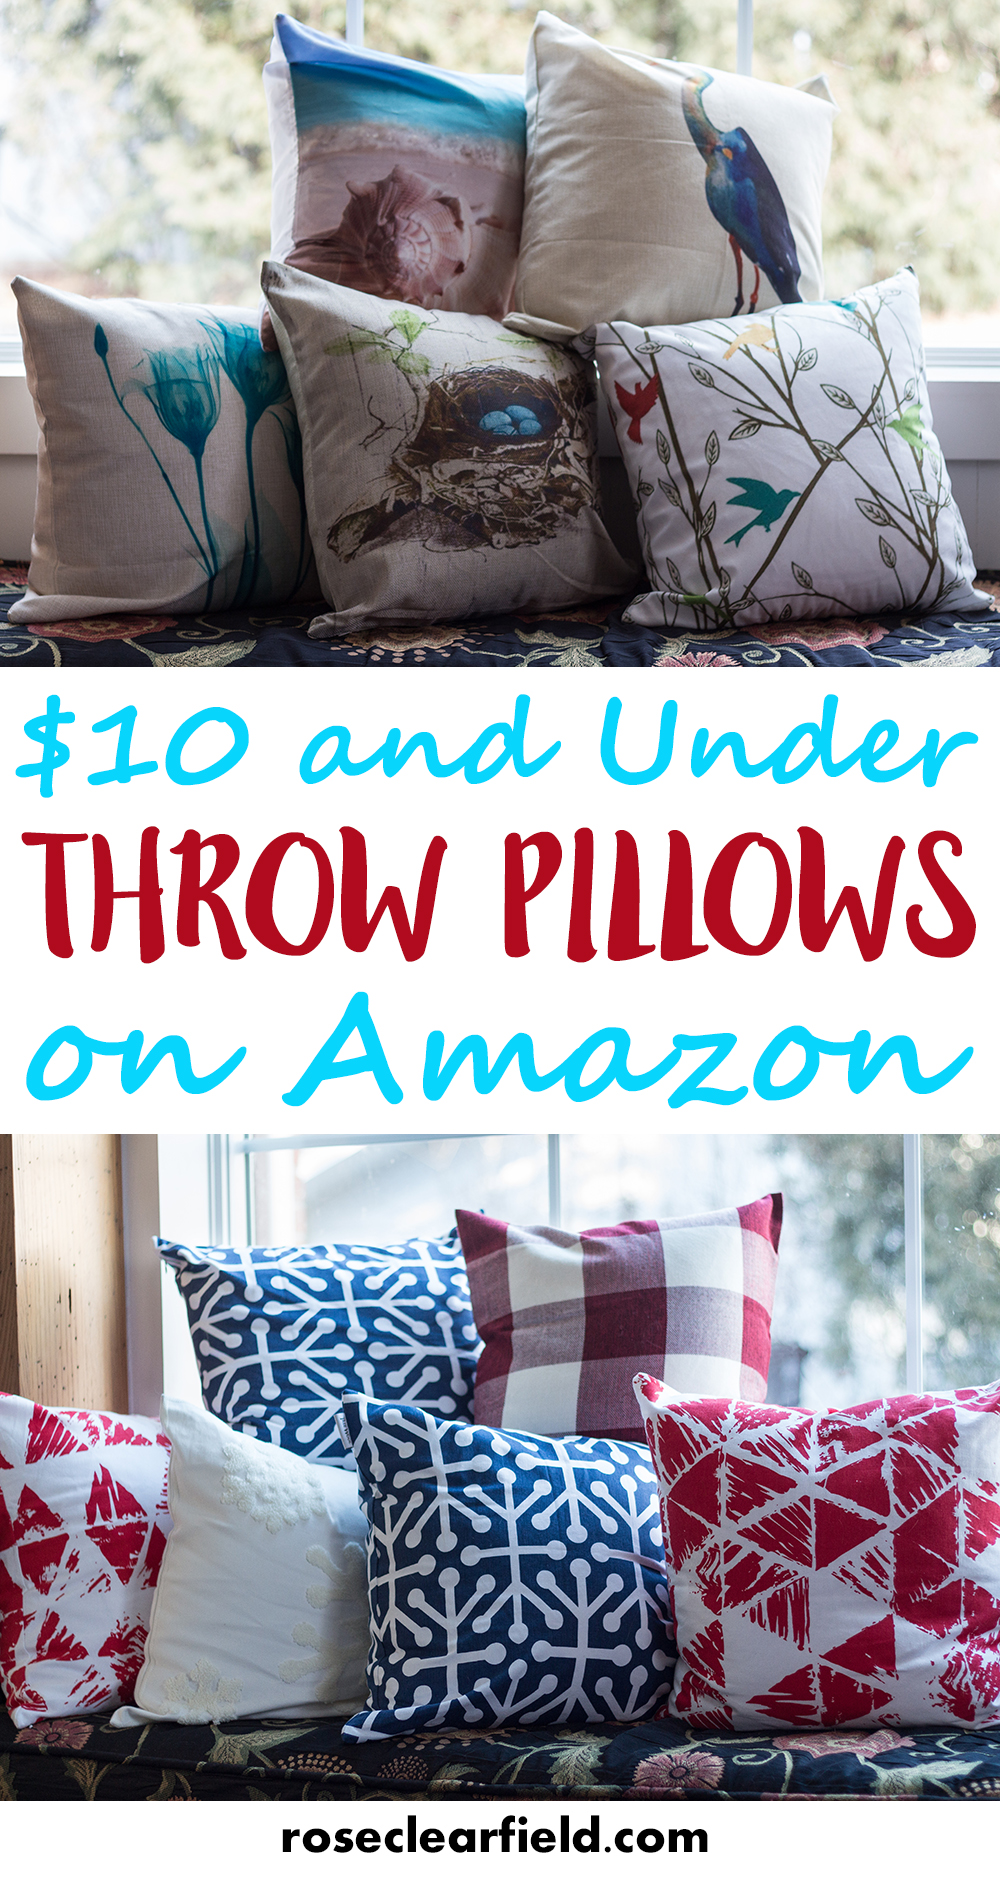 $10 and Under Throw Pillows on Amazon. Decorate your home beautifully without breaking the bank! | https://www.roseclearfield.com